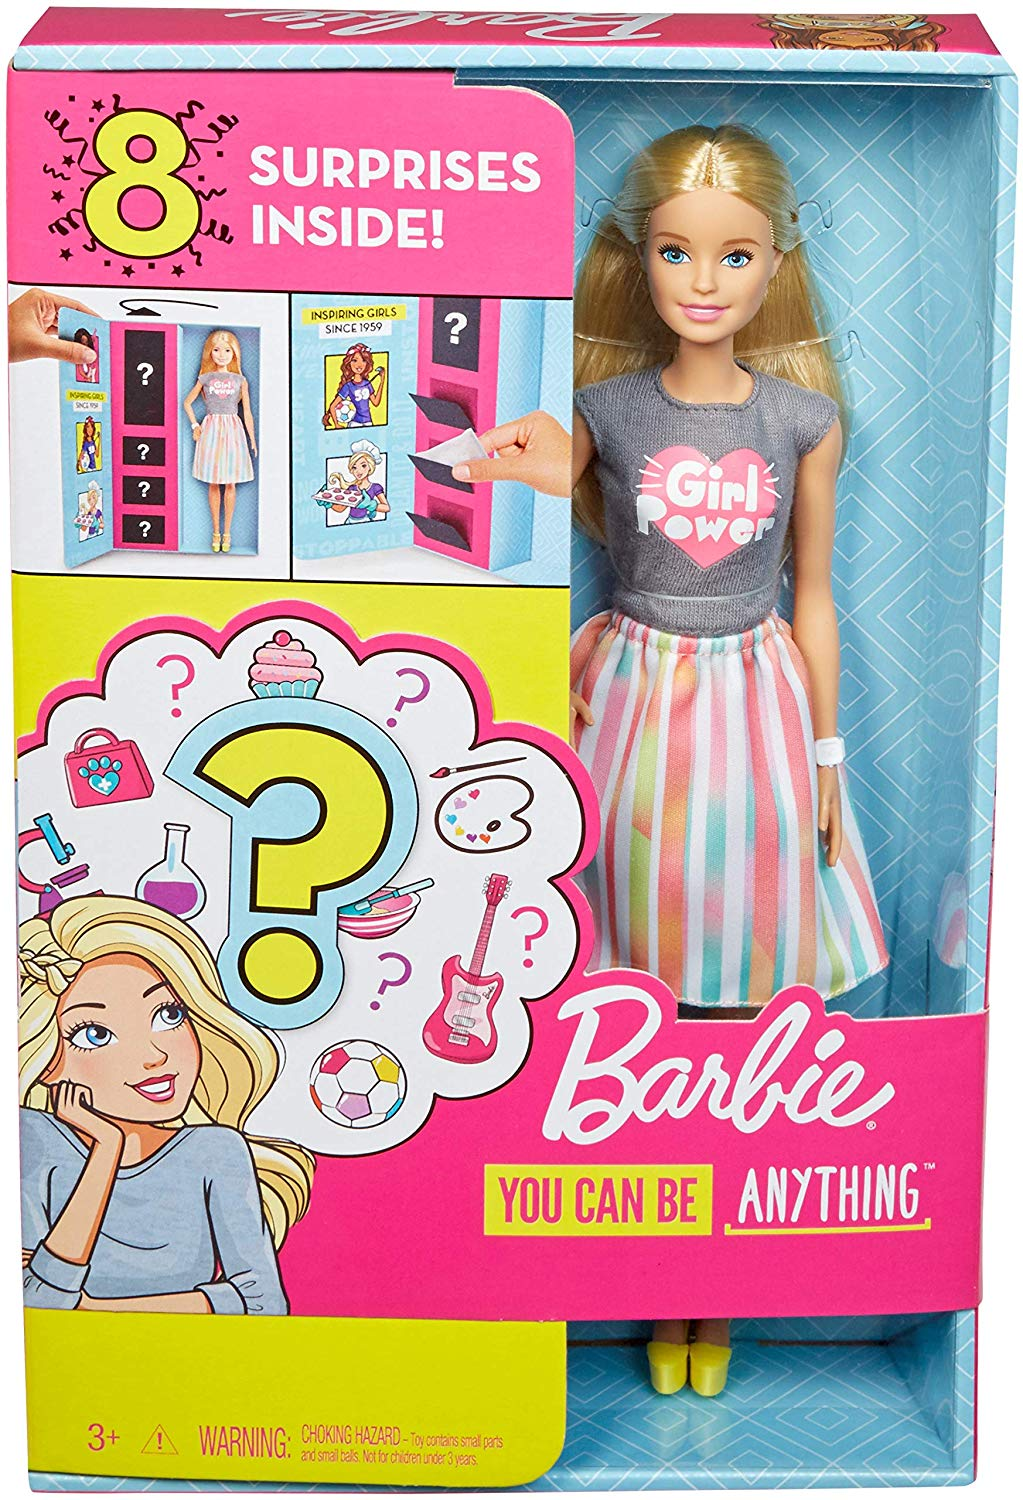 Barbie carriera 8 sorprese